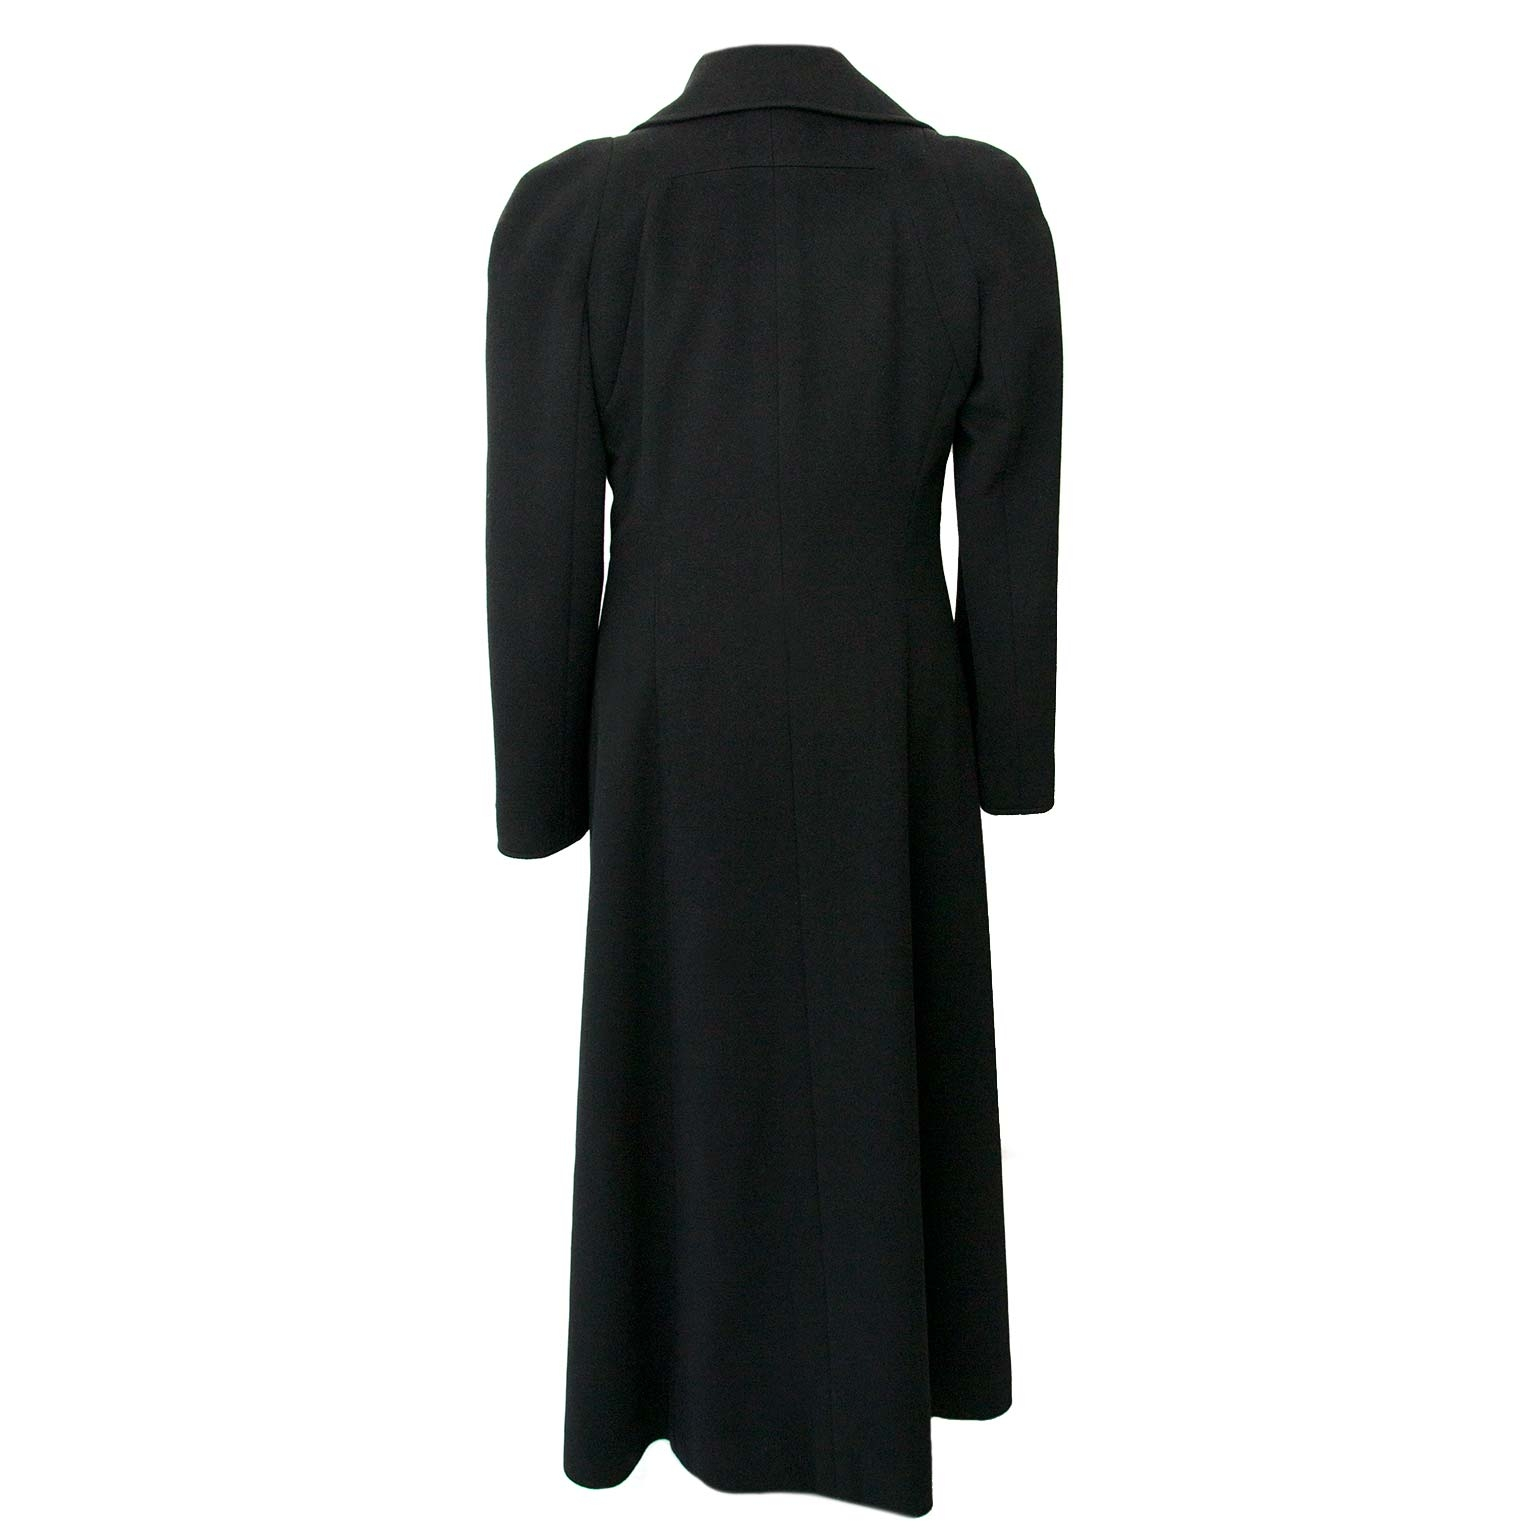 Chanel Black 100% Cashmere Long Coat - Size 40 Buy authentic designer Chanel secondhand clothing coat at Labellov at the best price. Safe and secure shopping. Koop tweedehands authentieke Chanel kleding jas bij designer webwinkel labellov.